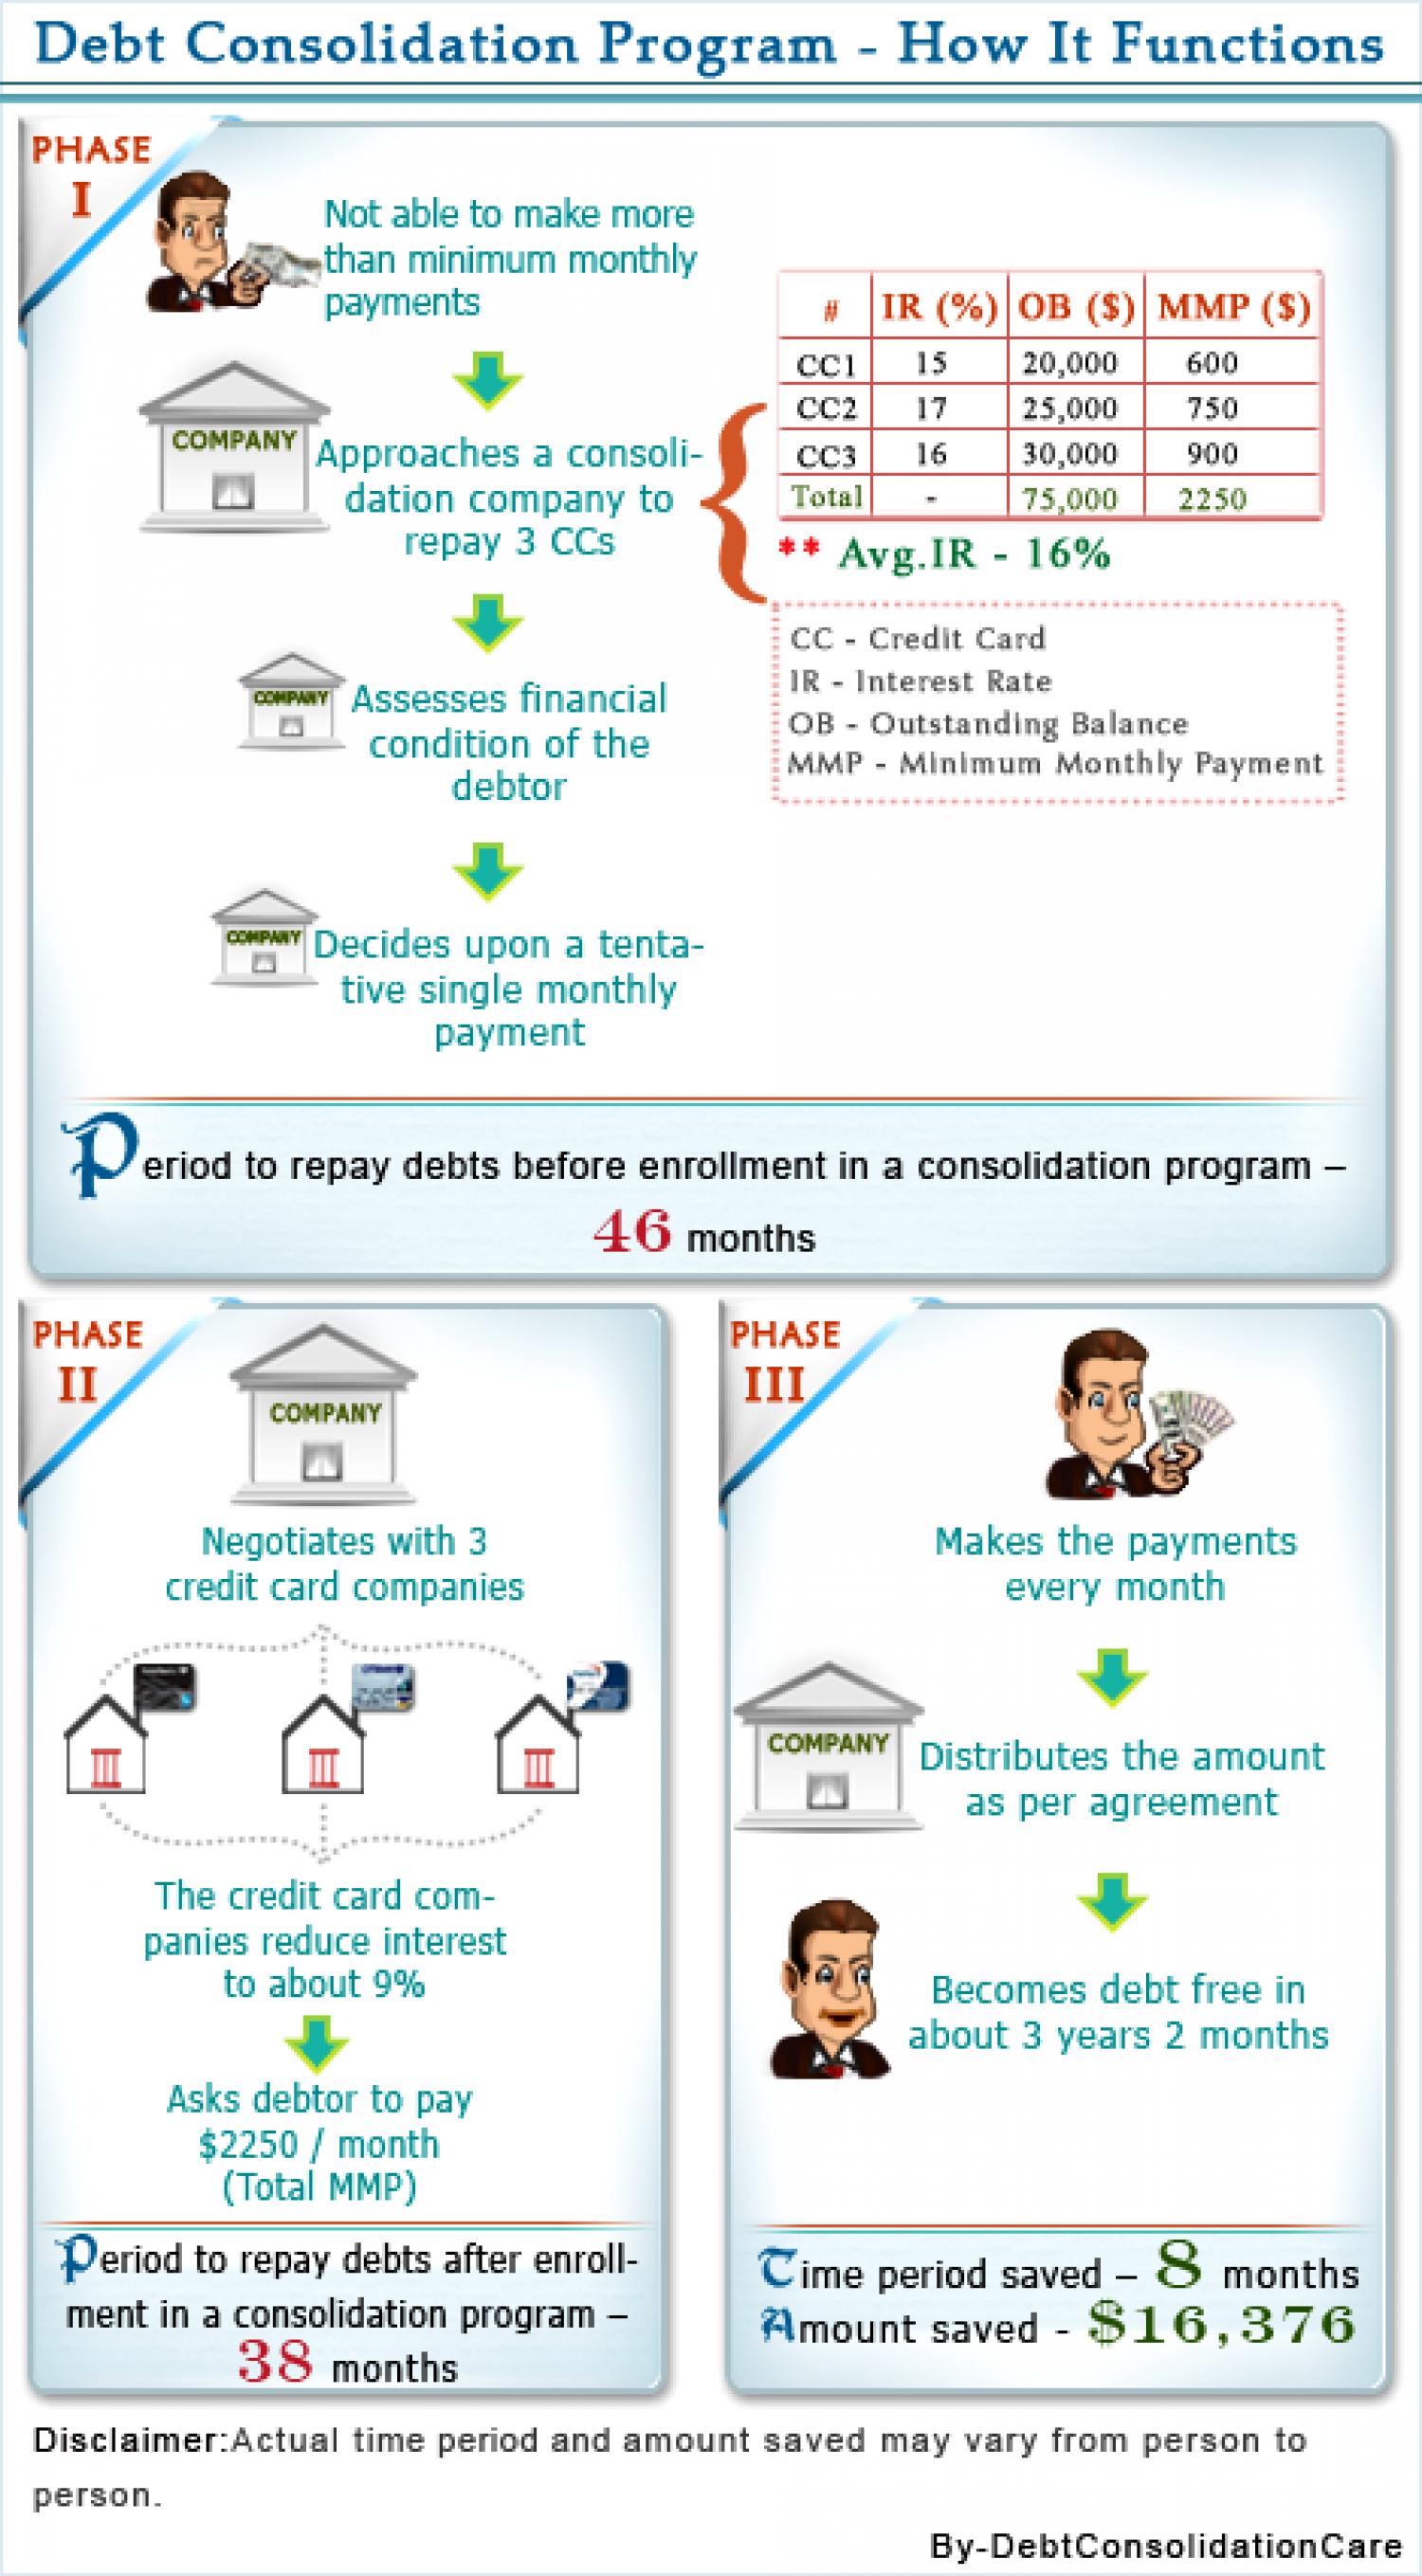 Debt Consolidation Infographic Elucidates How It Functions Visual